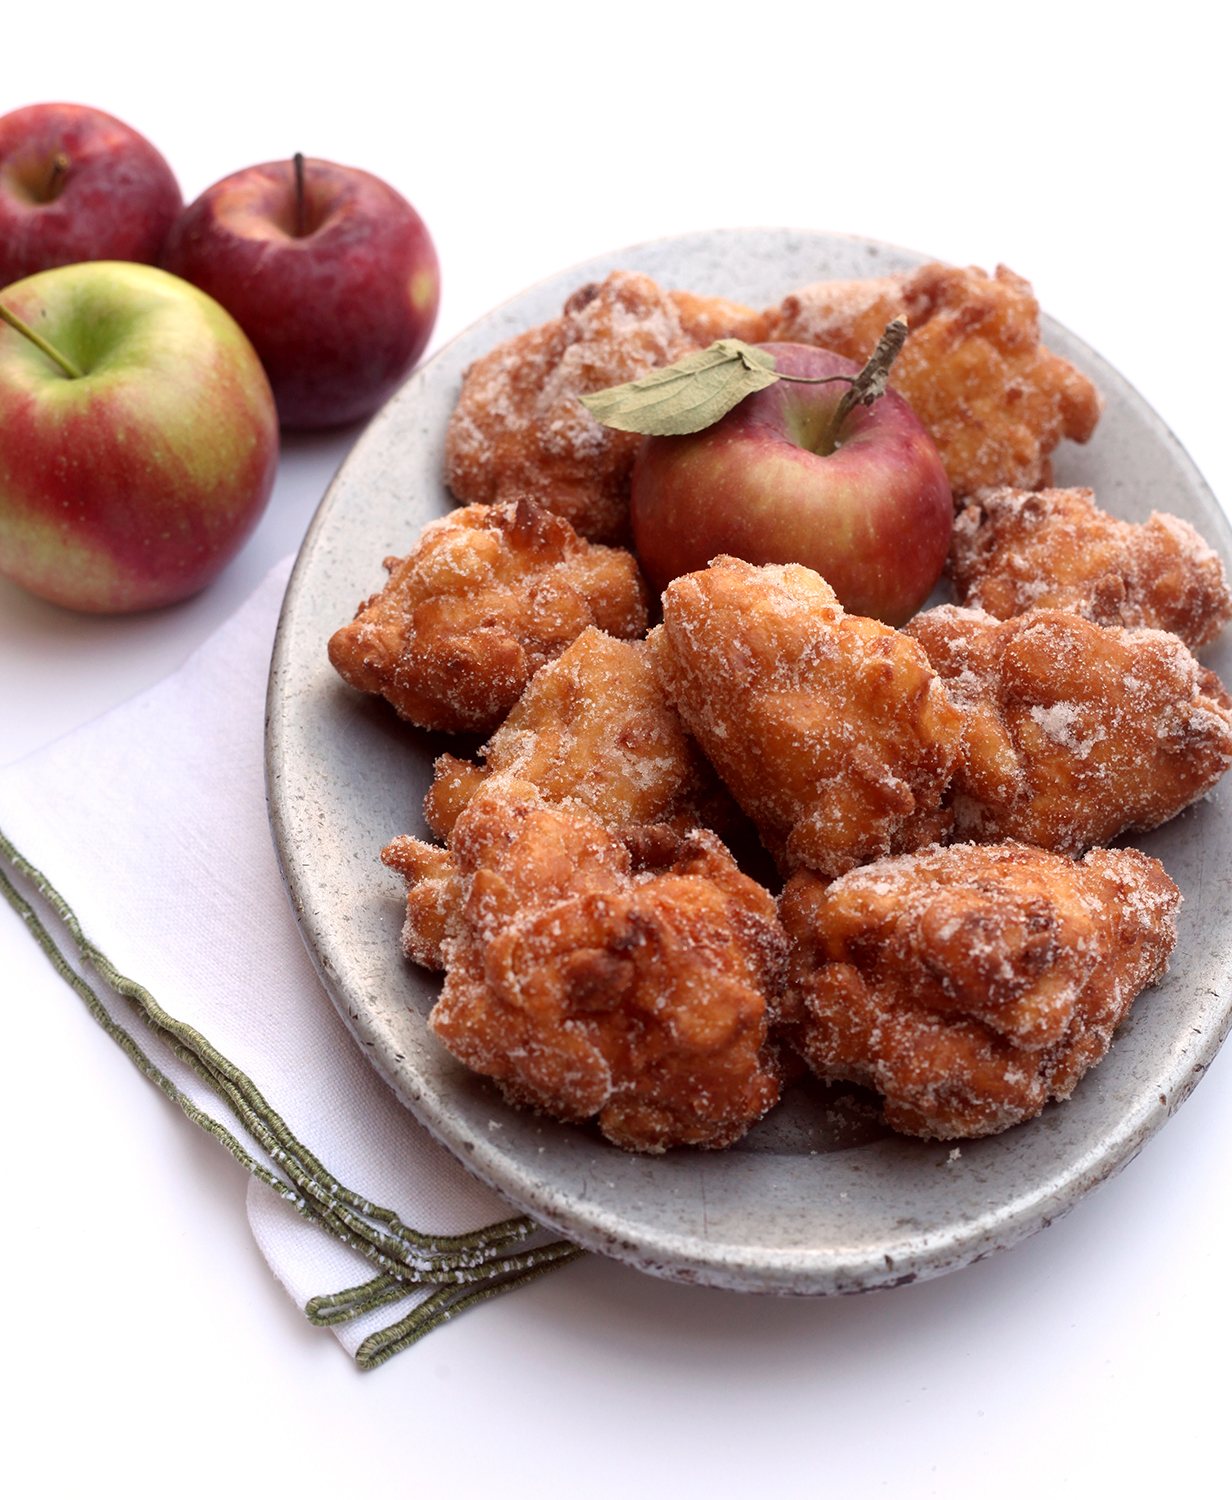 Apple and Cheddar Fritters